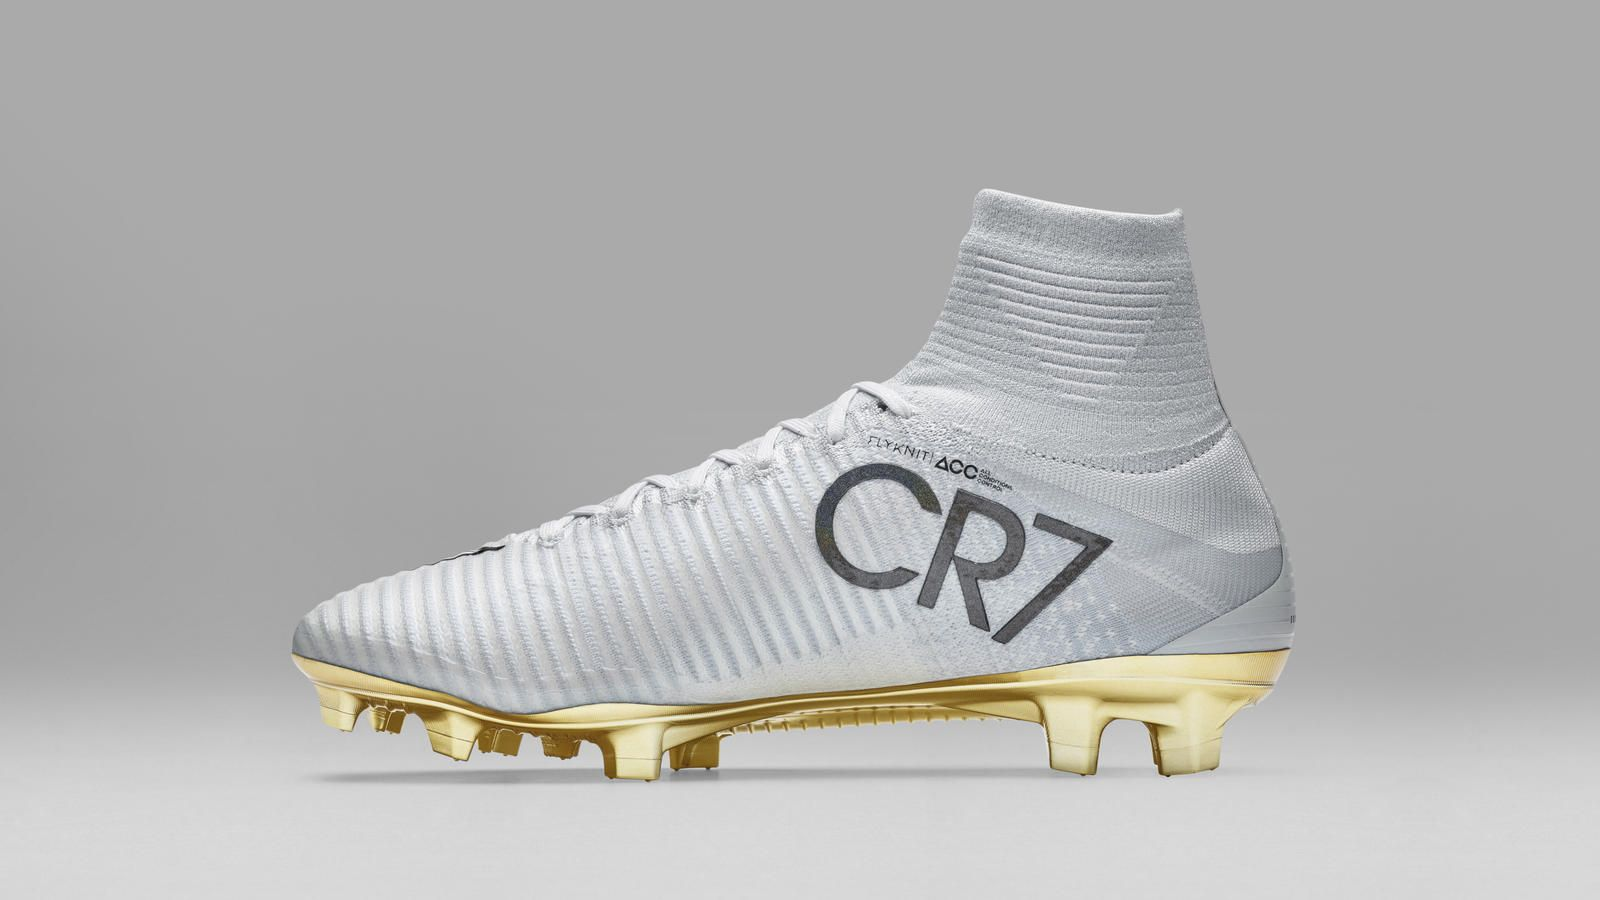 Nike News - Nike Pays Tribute to Cristiano Ronaldo s Tremendous Year With  Limited-Edition Mercurial Superfly CR7 Vitórias f5abf2ca4e34a